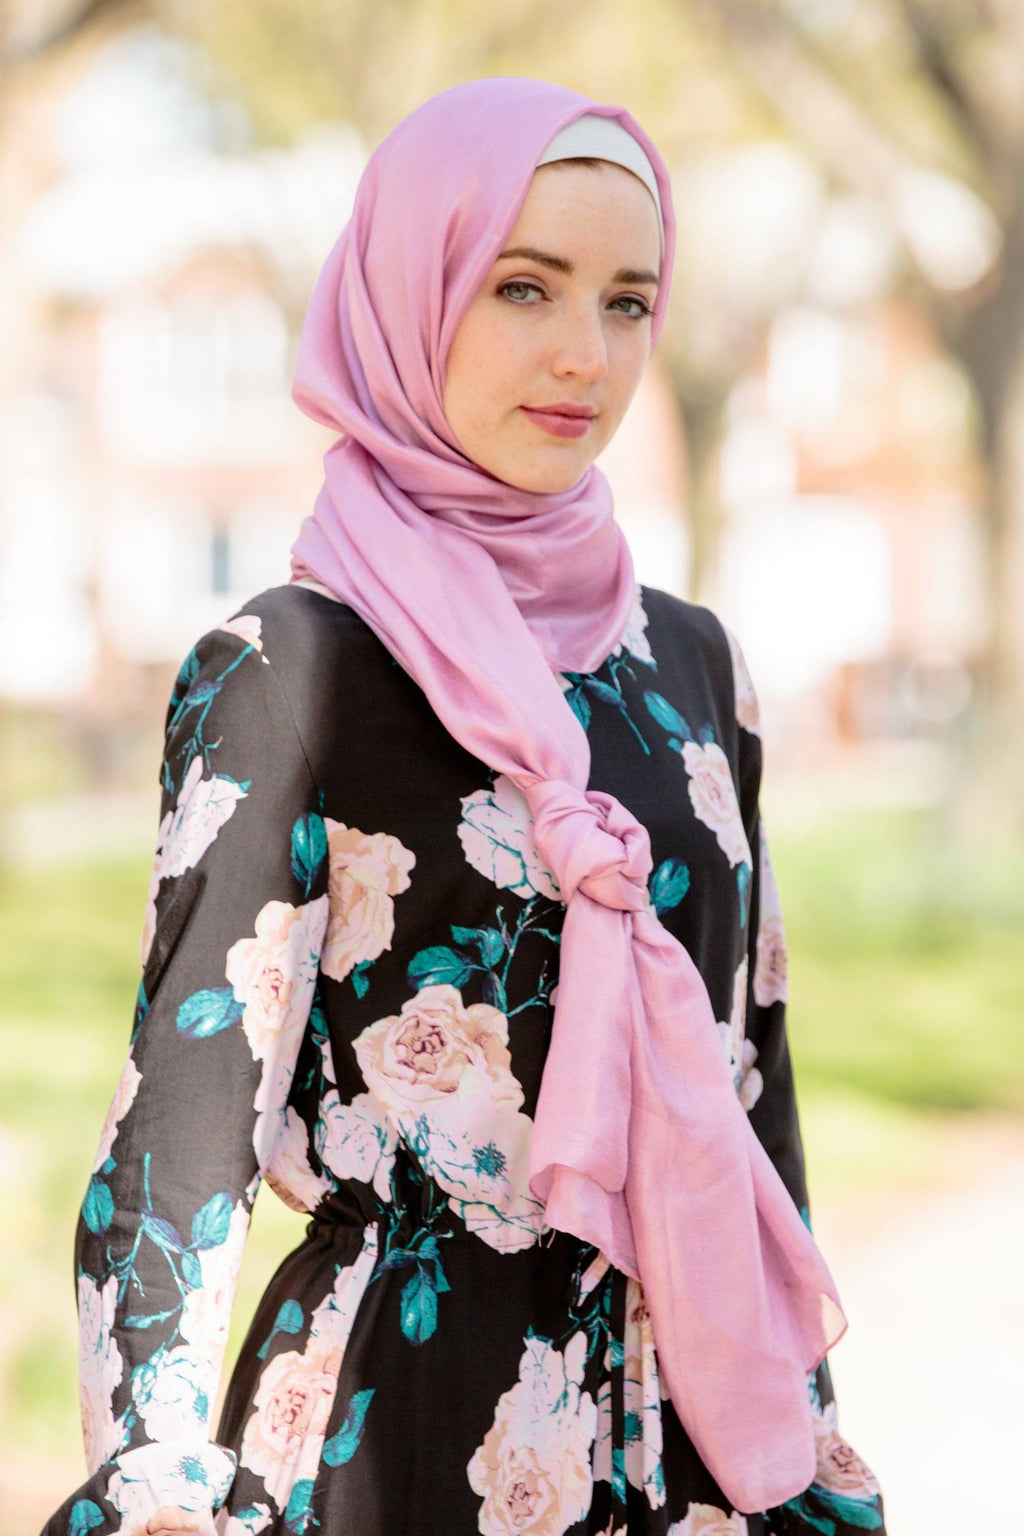 Dusty Pink Shimmer Hijab Head Scarf - Abaya, Hijabs, Jilbabs, on sale now at UrbanModesty.com